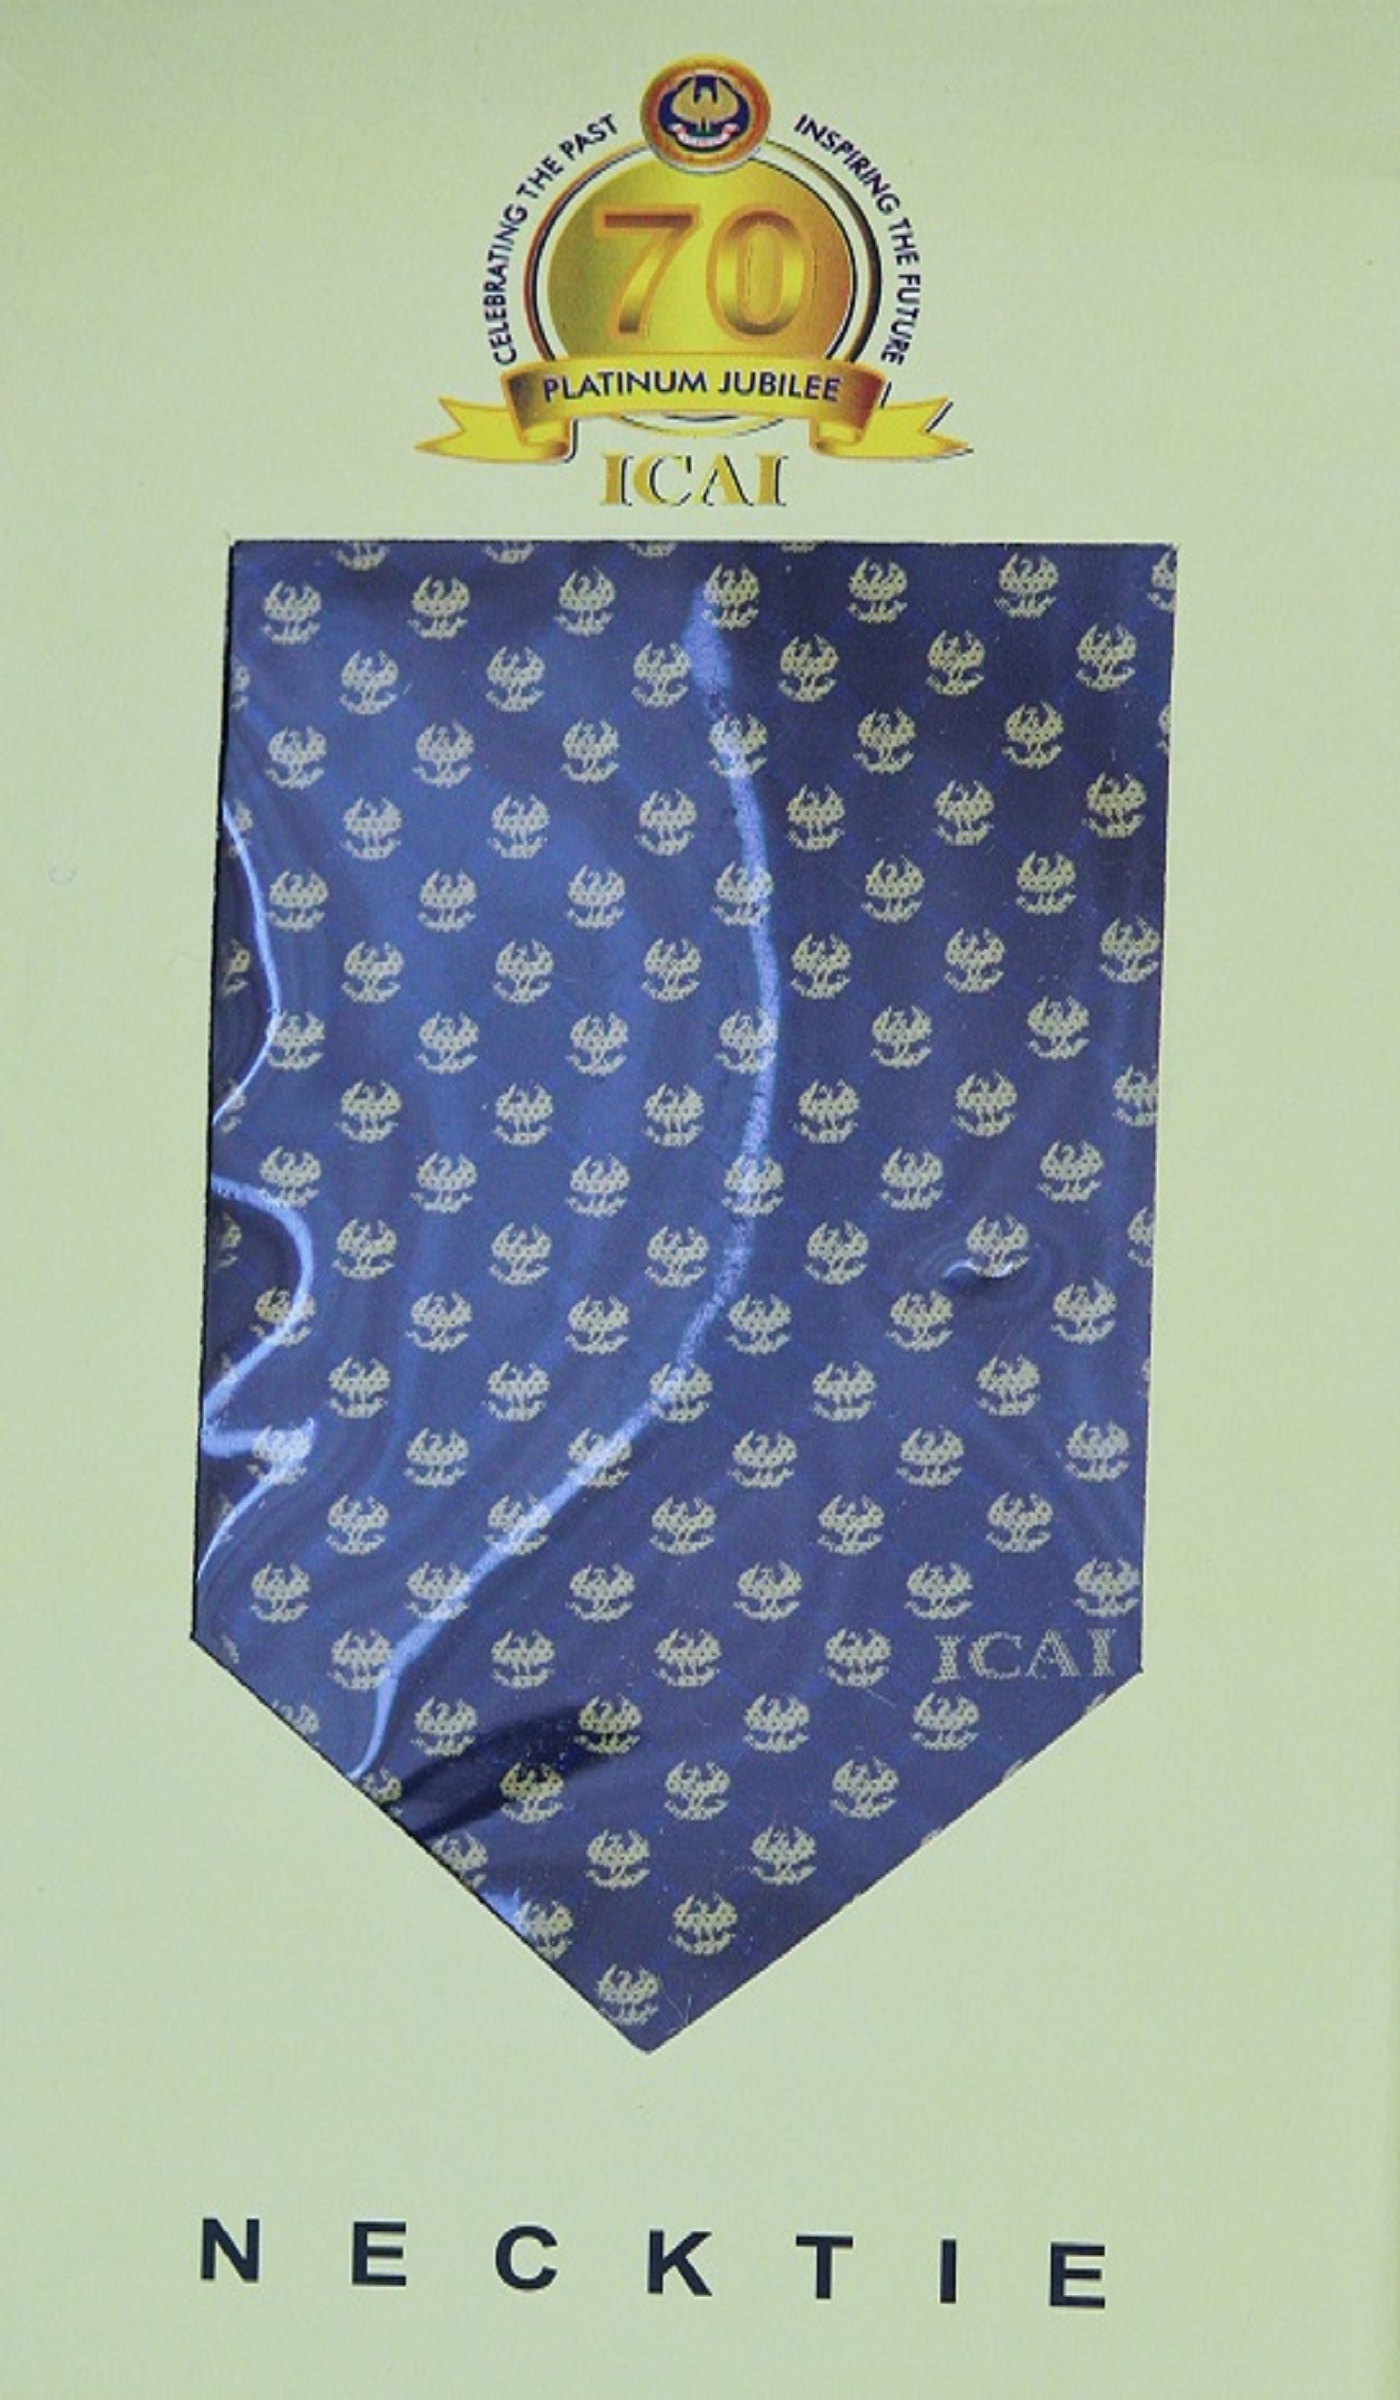 ICAI Platinum Jubilee NECK TIE - Navy Blue